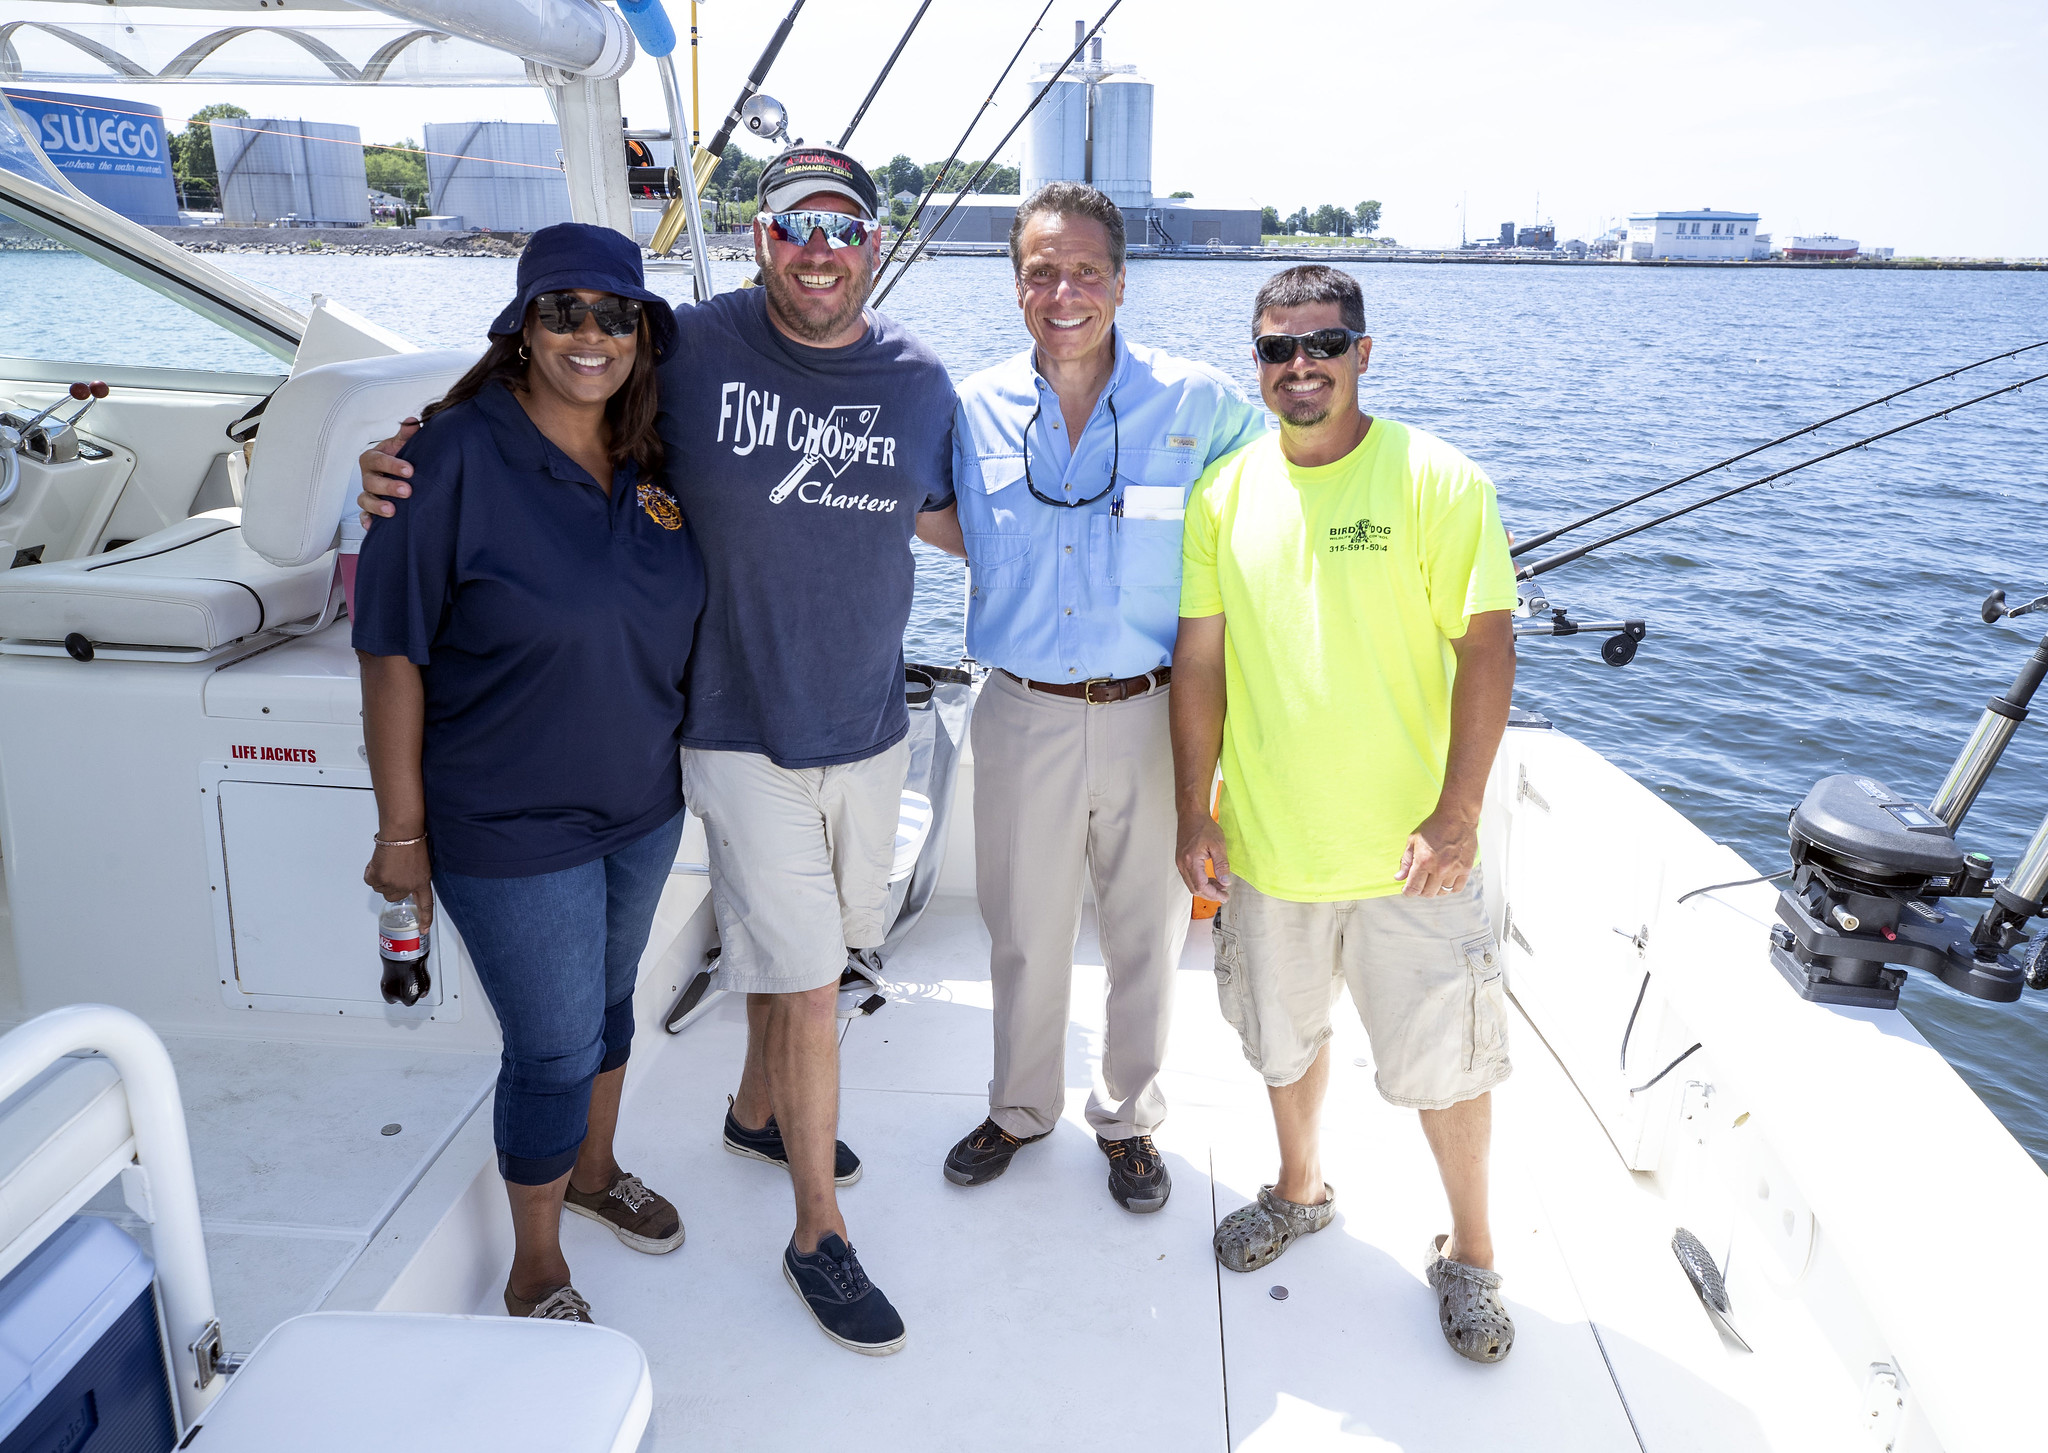 Governor Cuomo Launches New Campaign to Boost Tourism in Lake Ontario Region